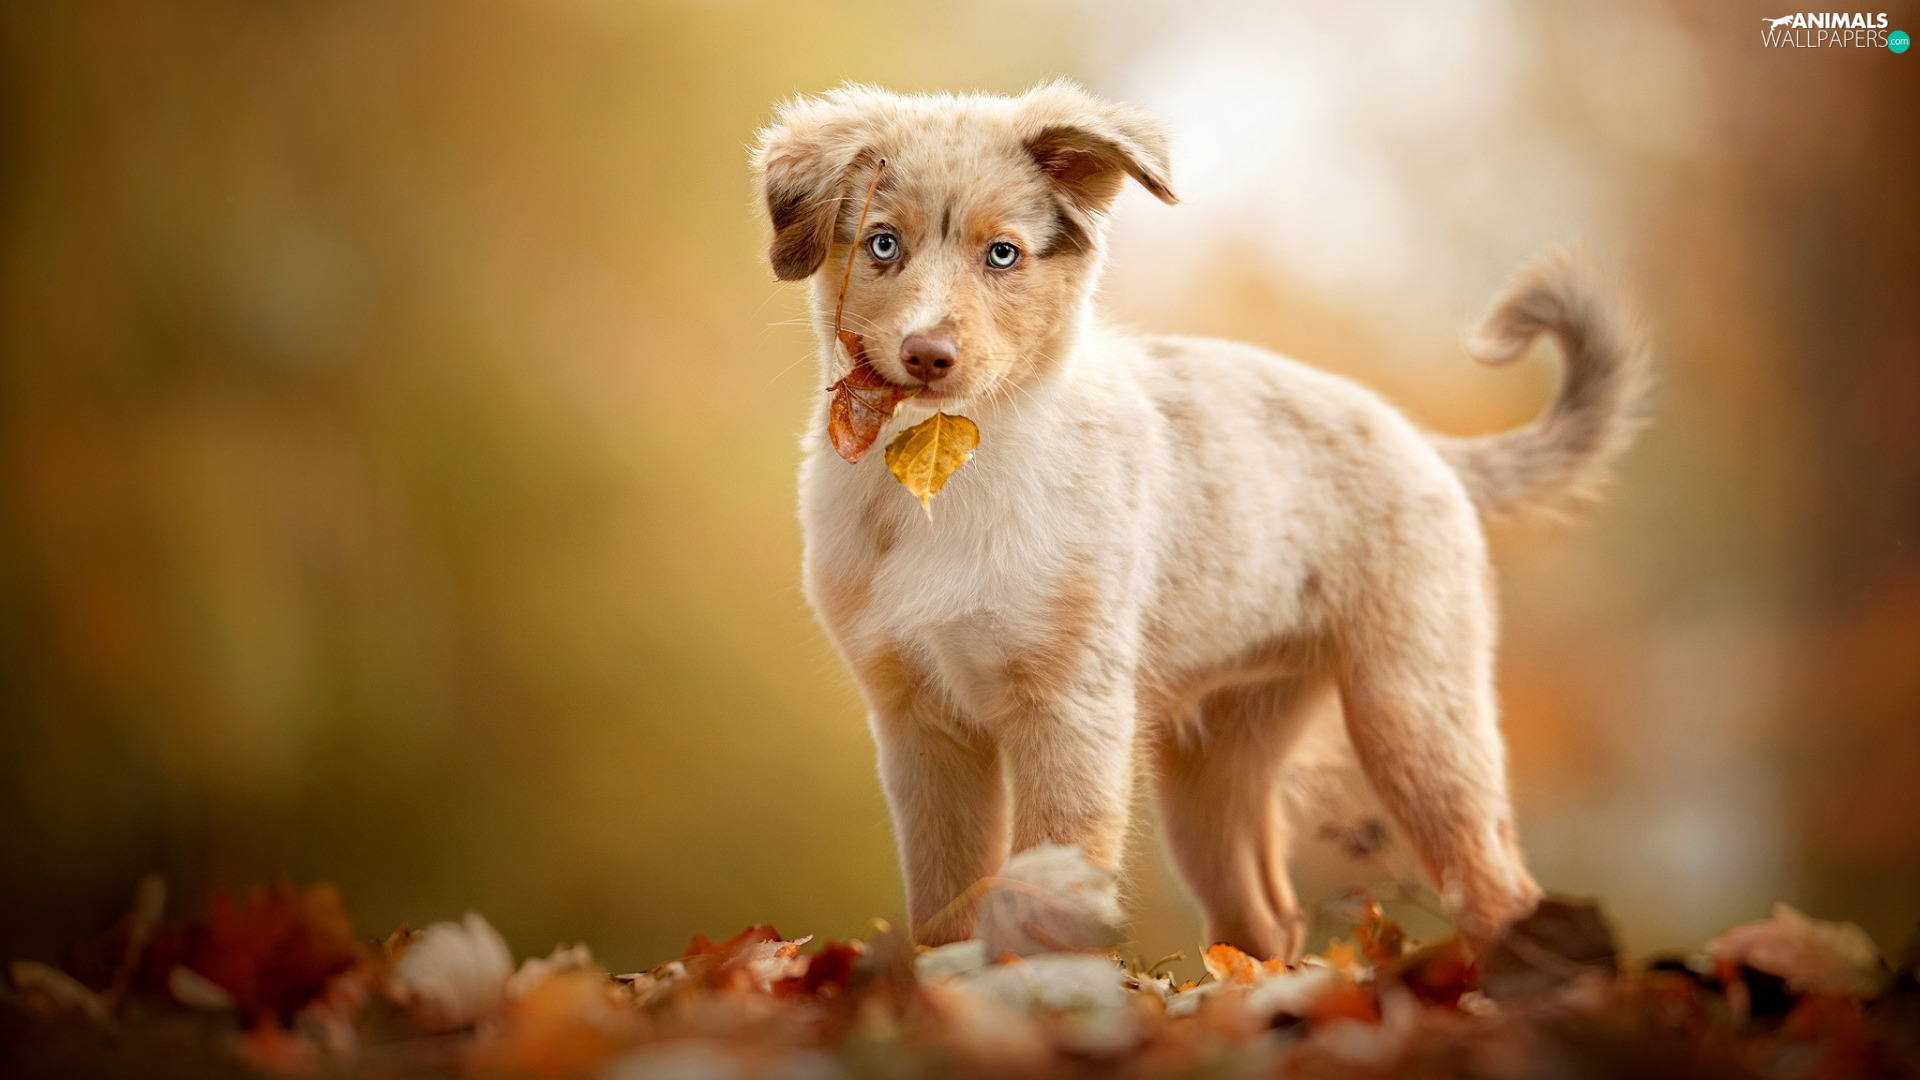 autumn, Leaf, Australian Shepherd, Puppy, dog